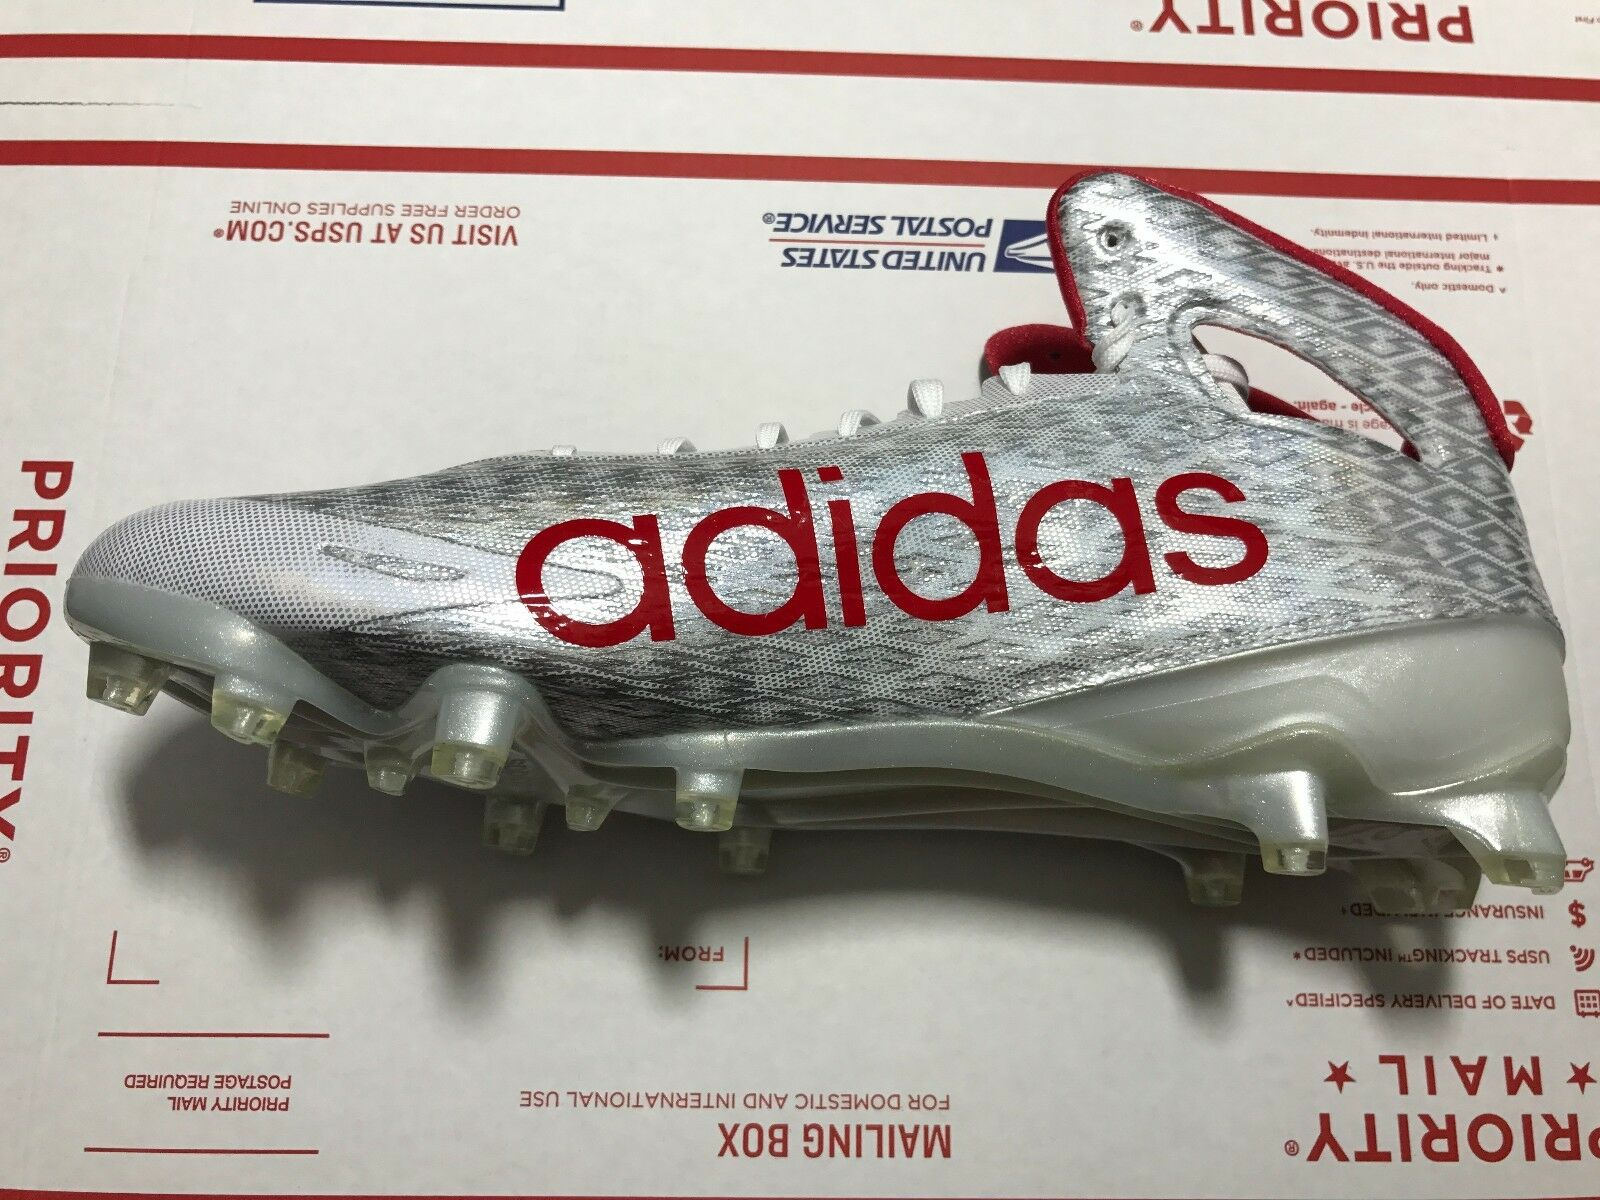 Chaussures de football Adidas adizero 5-Star 5.0 Mid pour hommes, style B54273 PDSF 115 $